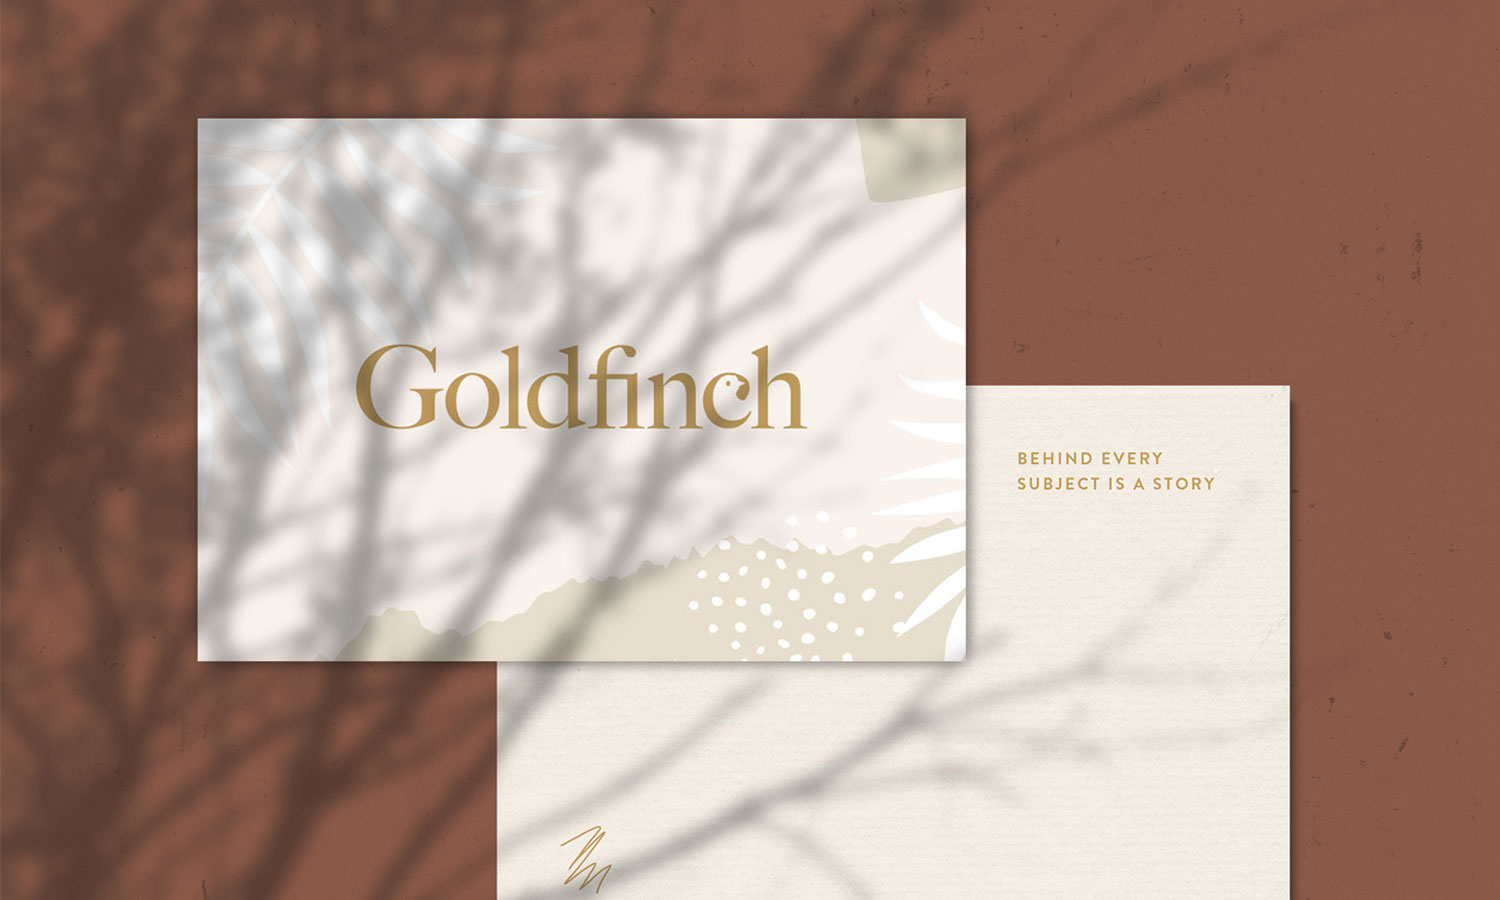 Goldfinch Story Studio